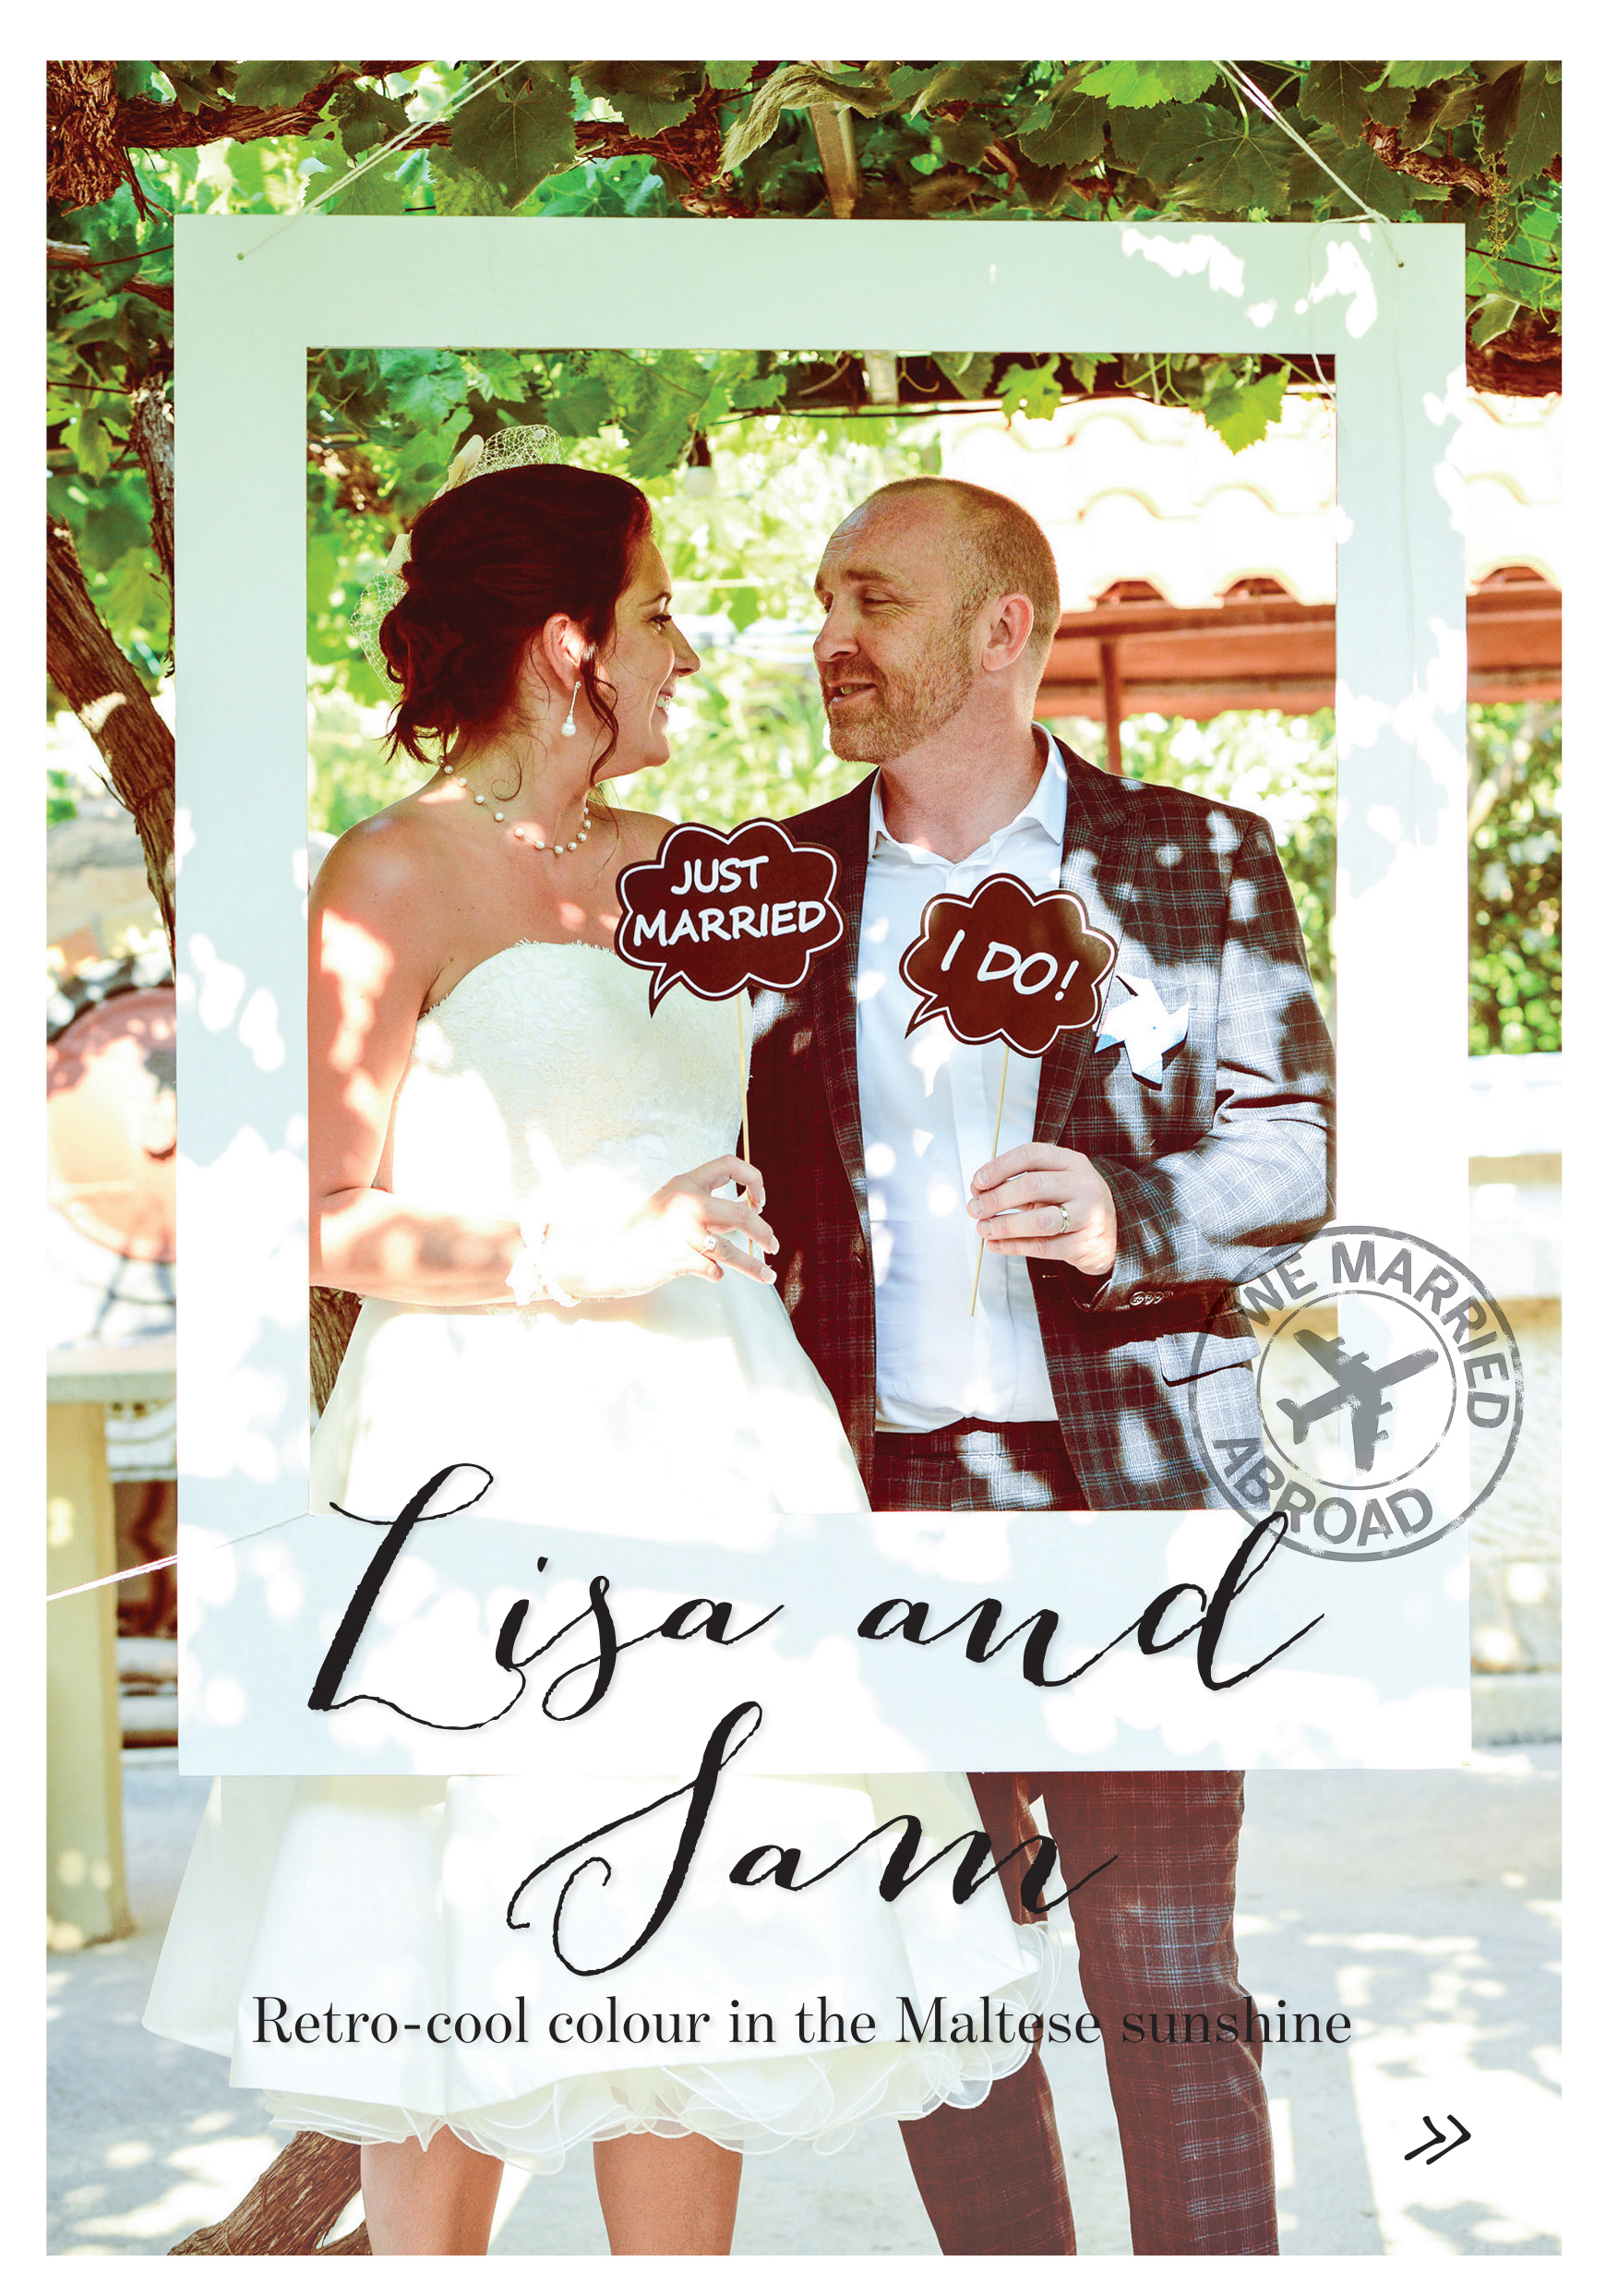 Featured our own wedding